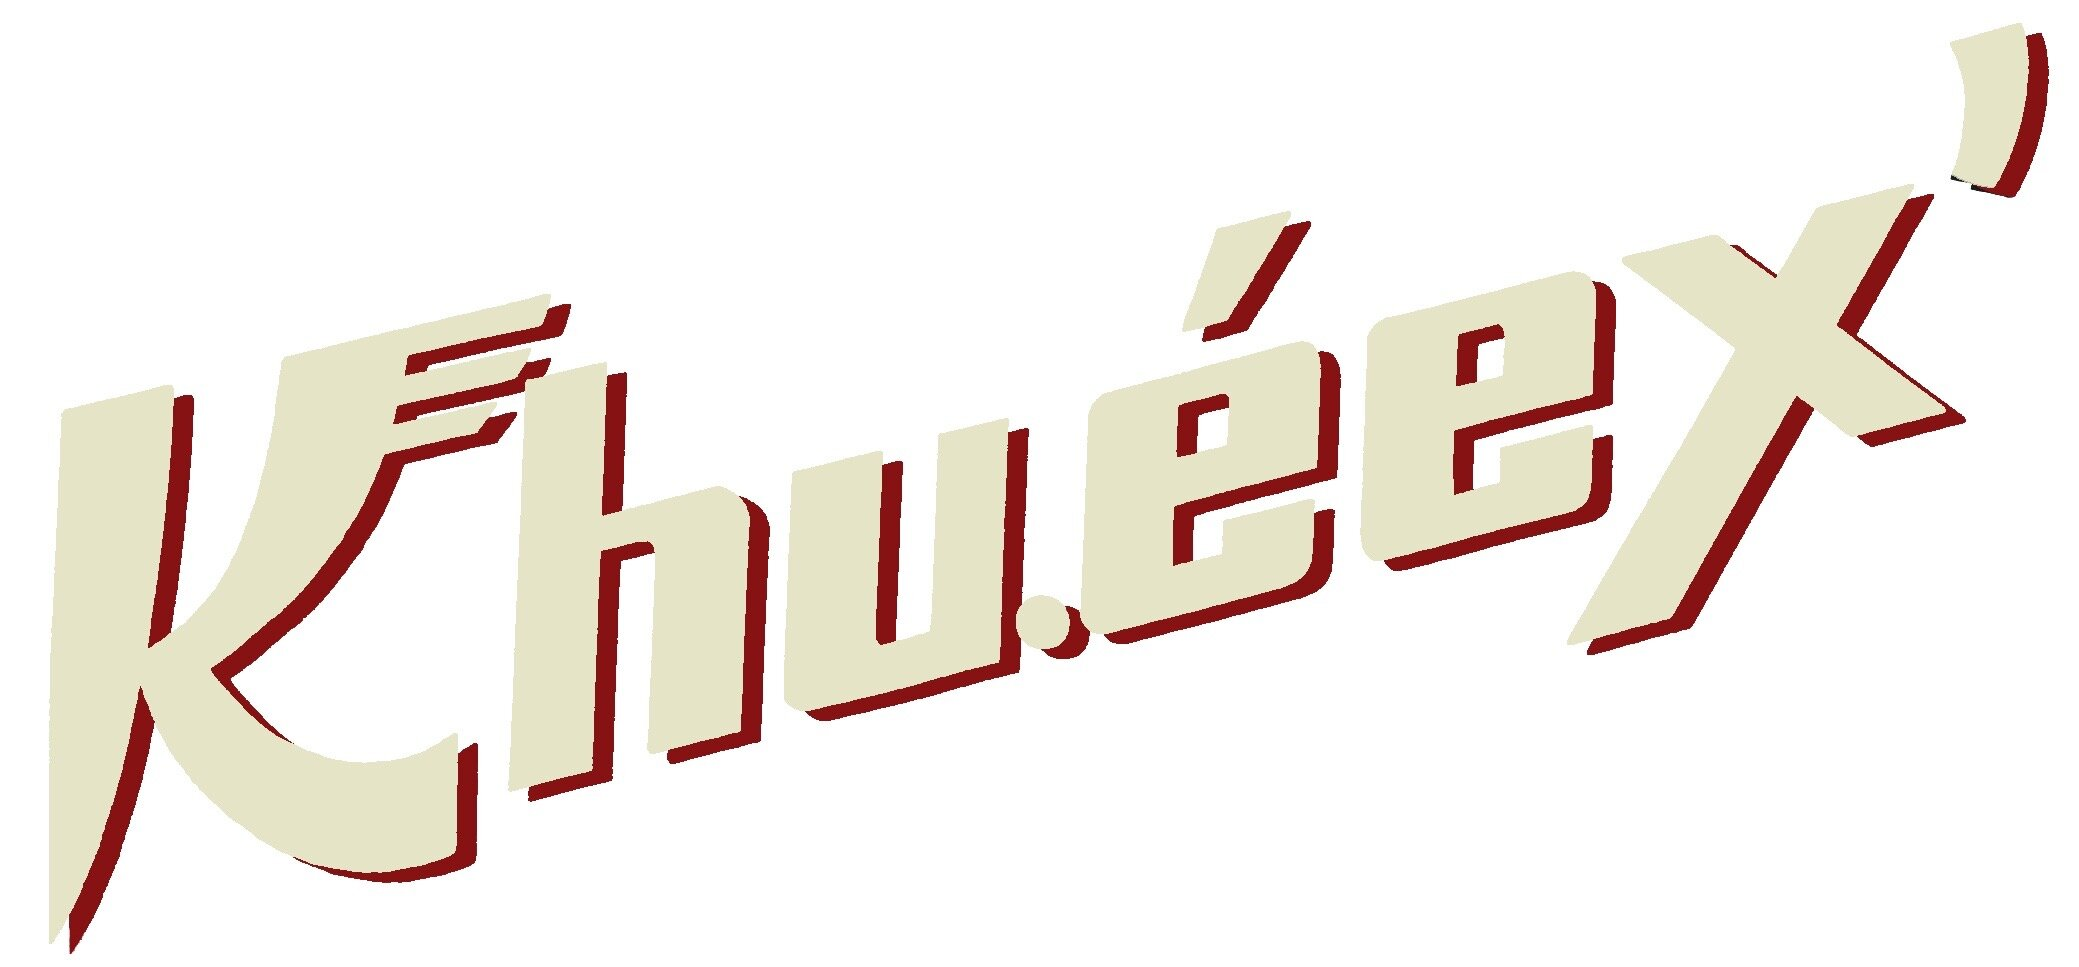 Khueex Logo Original copy.jpg